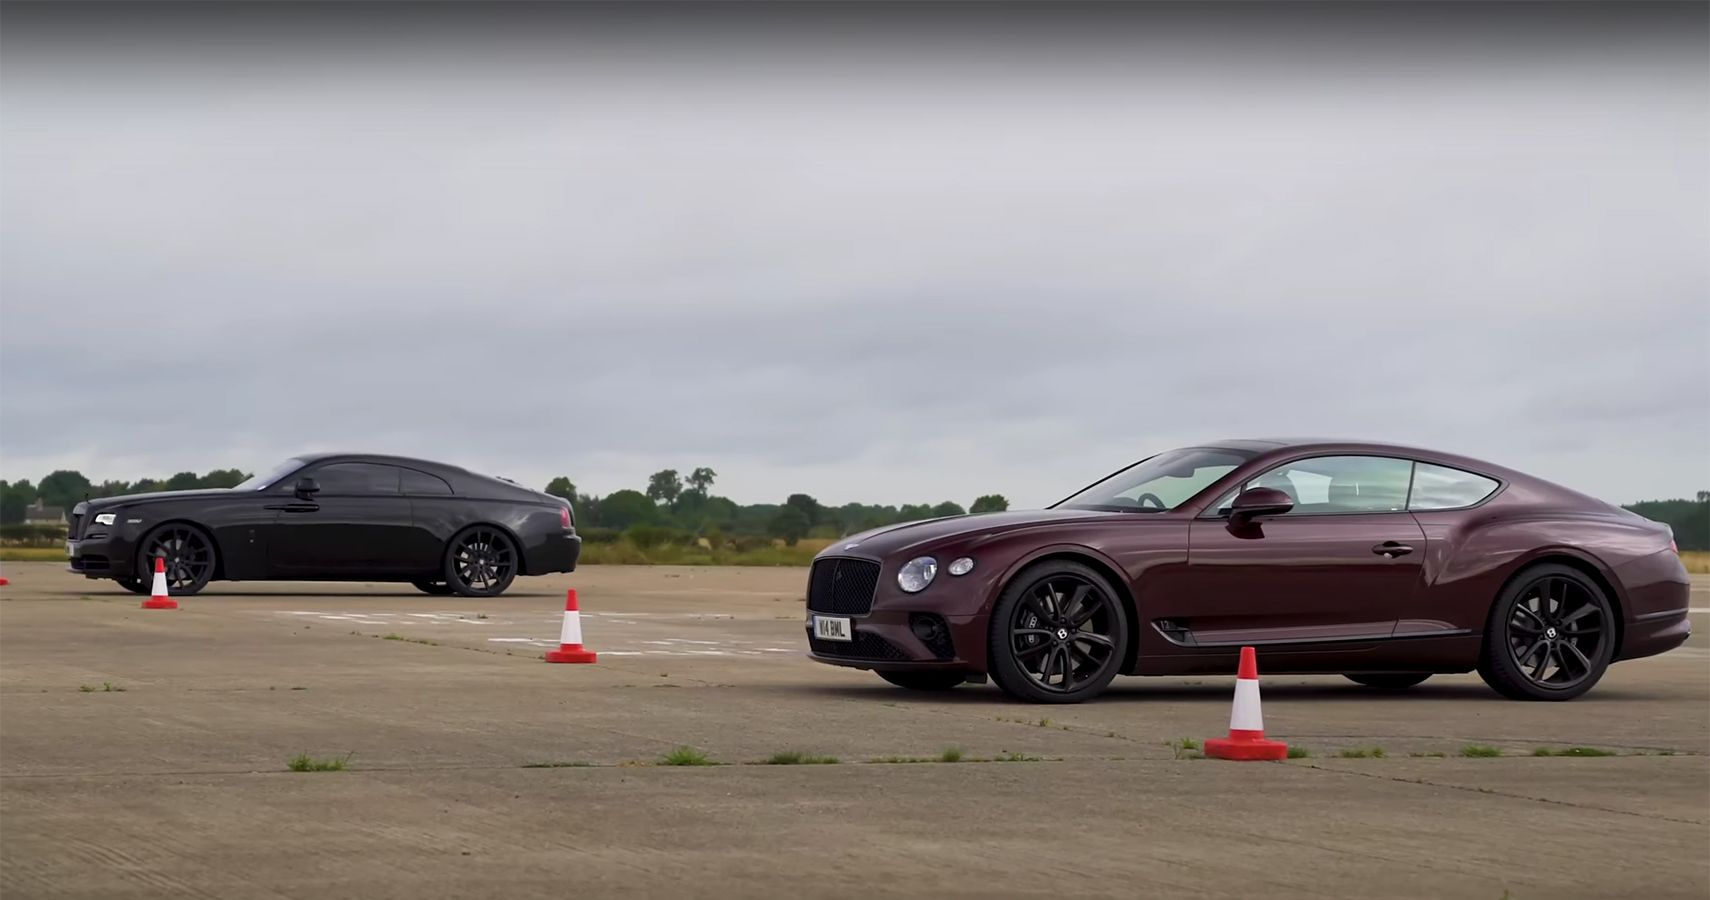 Rolls-Royce Wraith Takes On Bentley Continental GT In A Drag Race